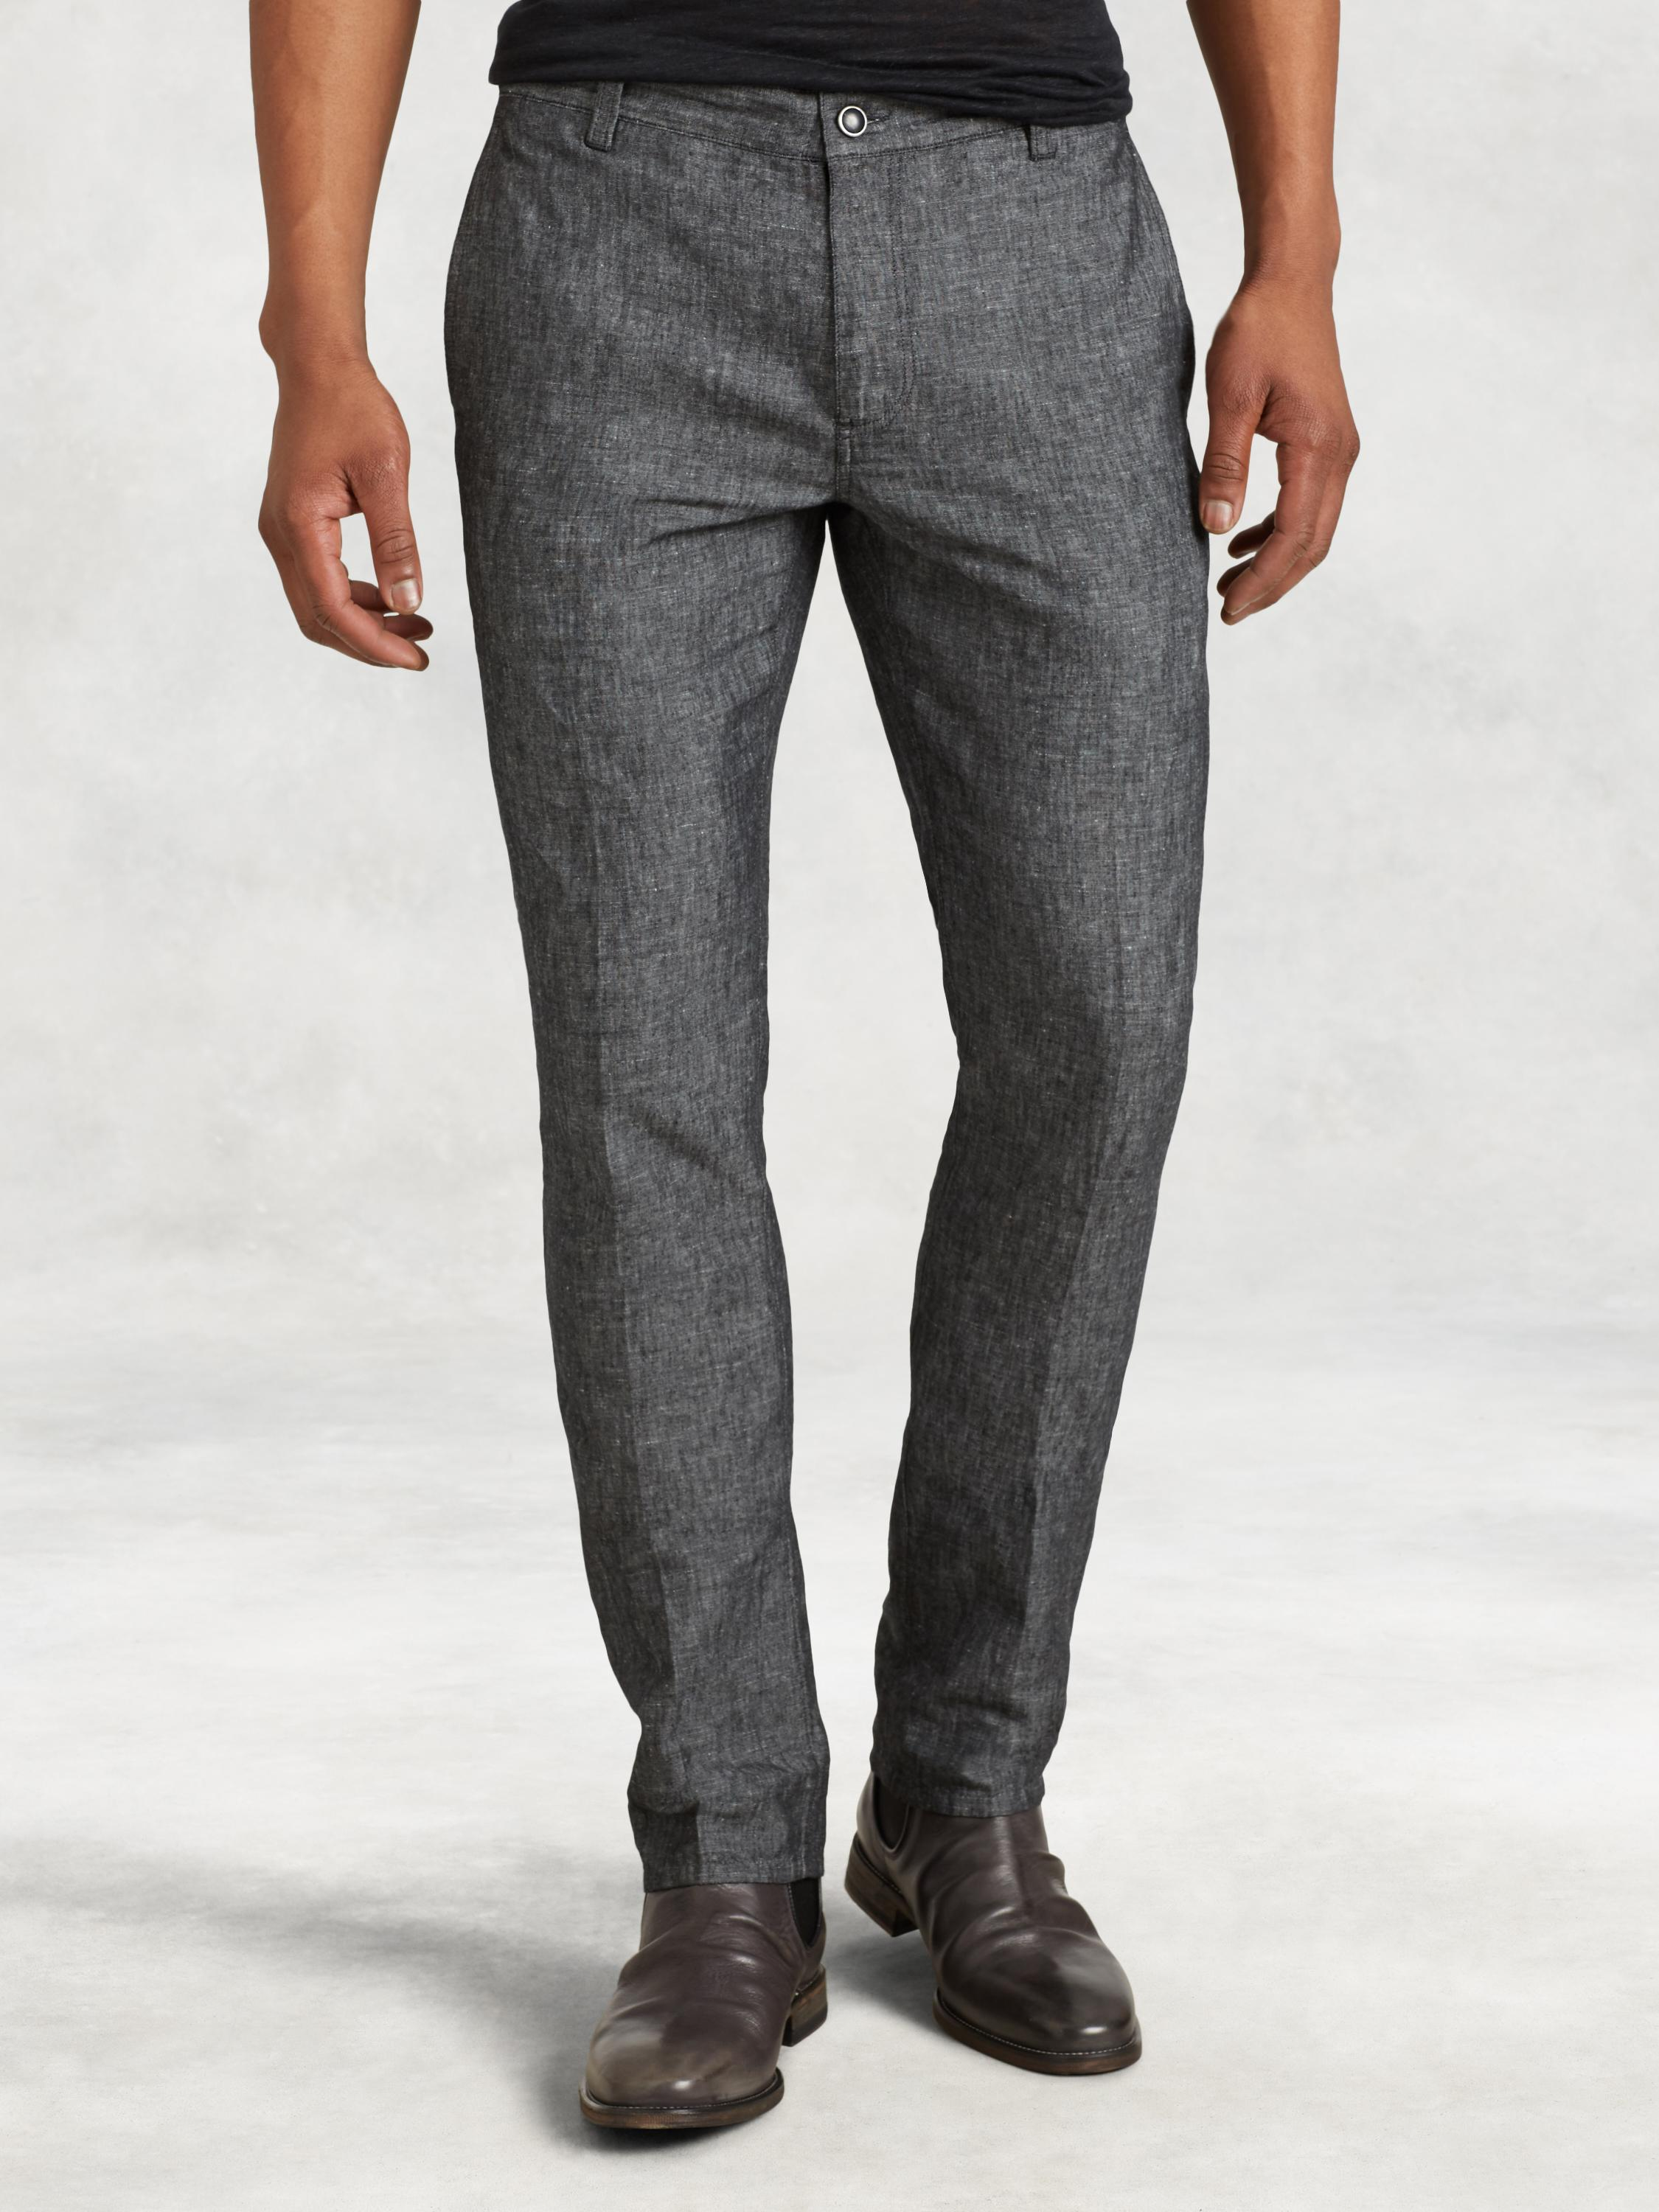 Cotton Linen Motor City Jean